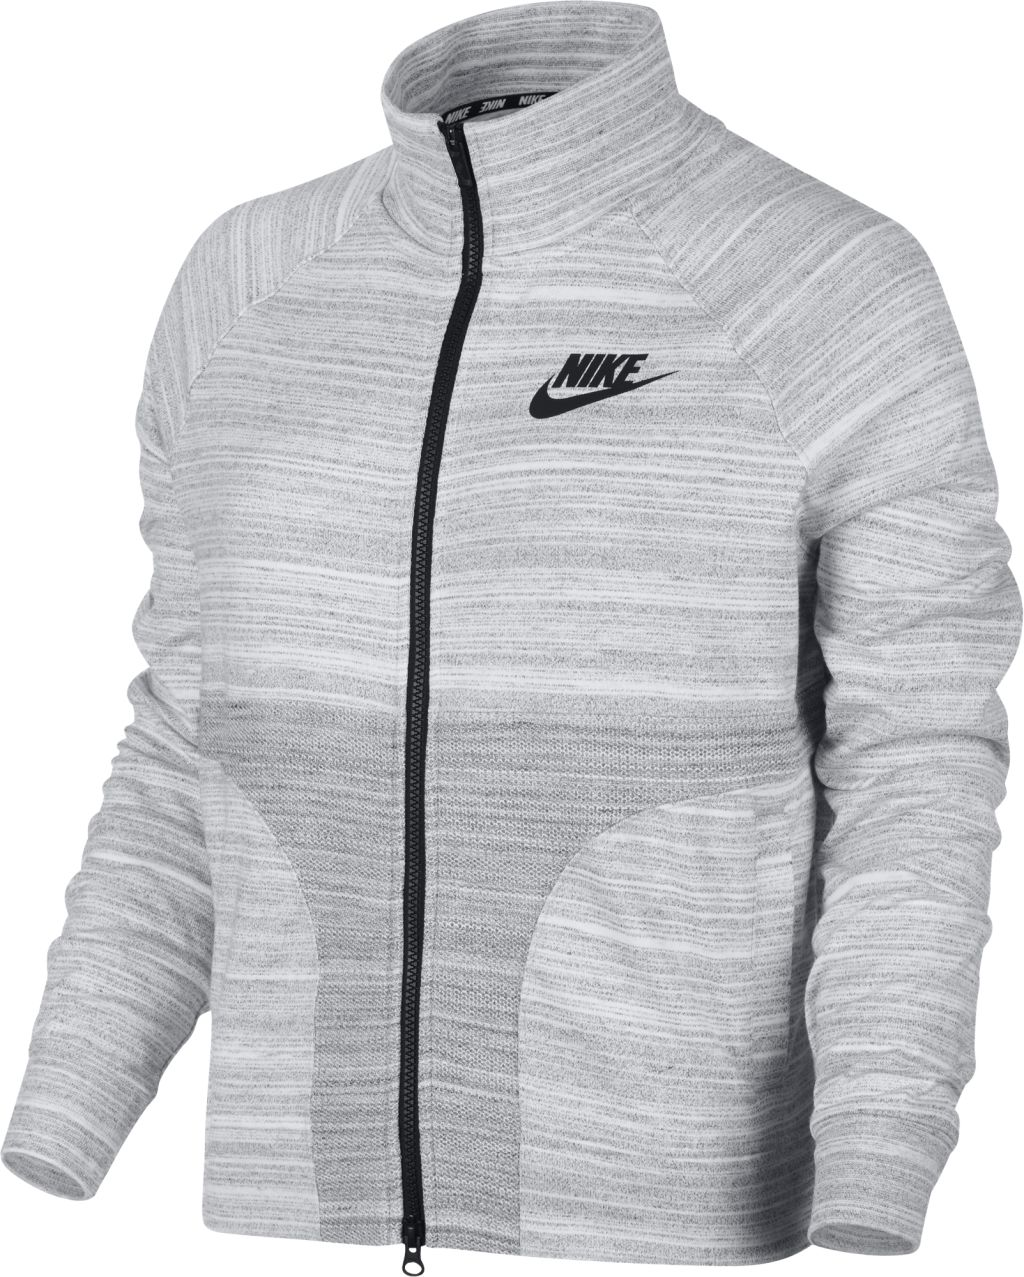 Nike Sportswear Advance 15 Track Jacket W